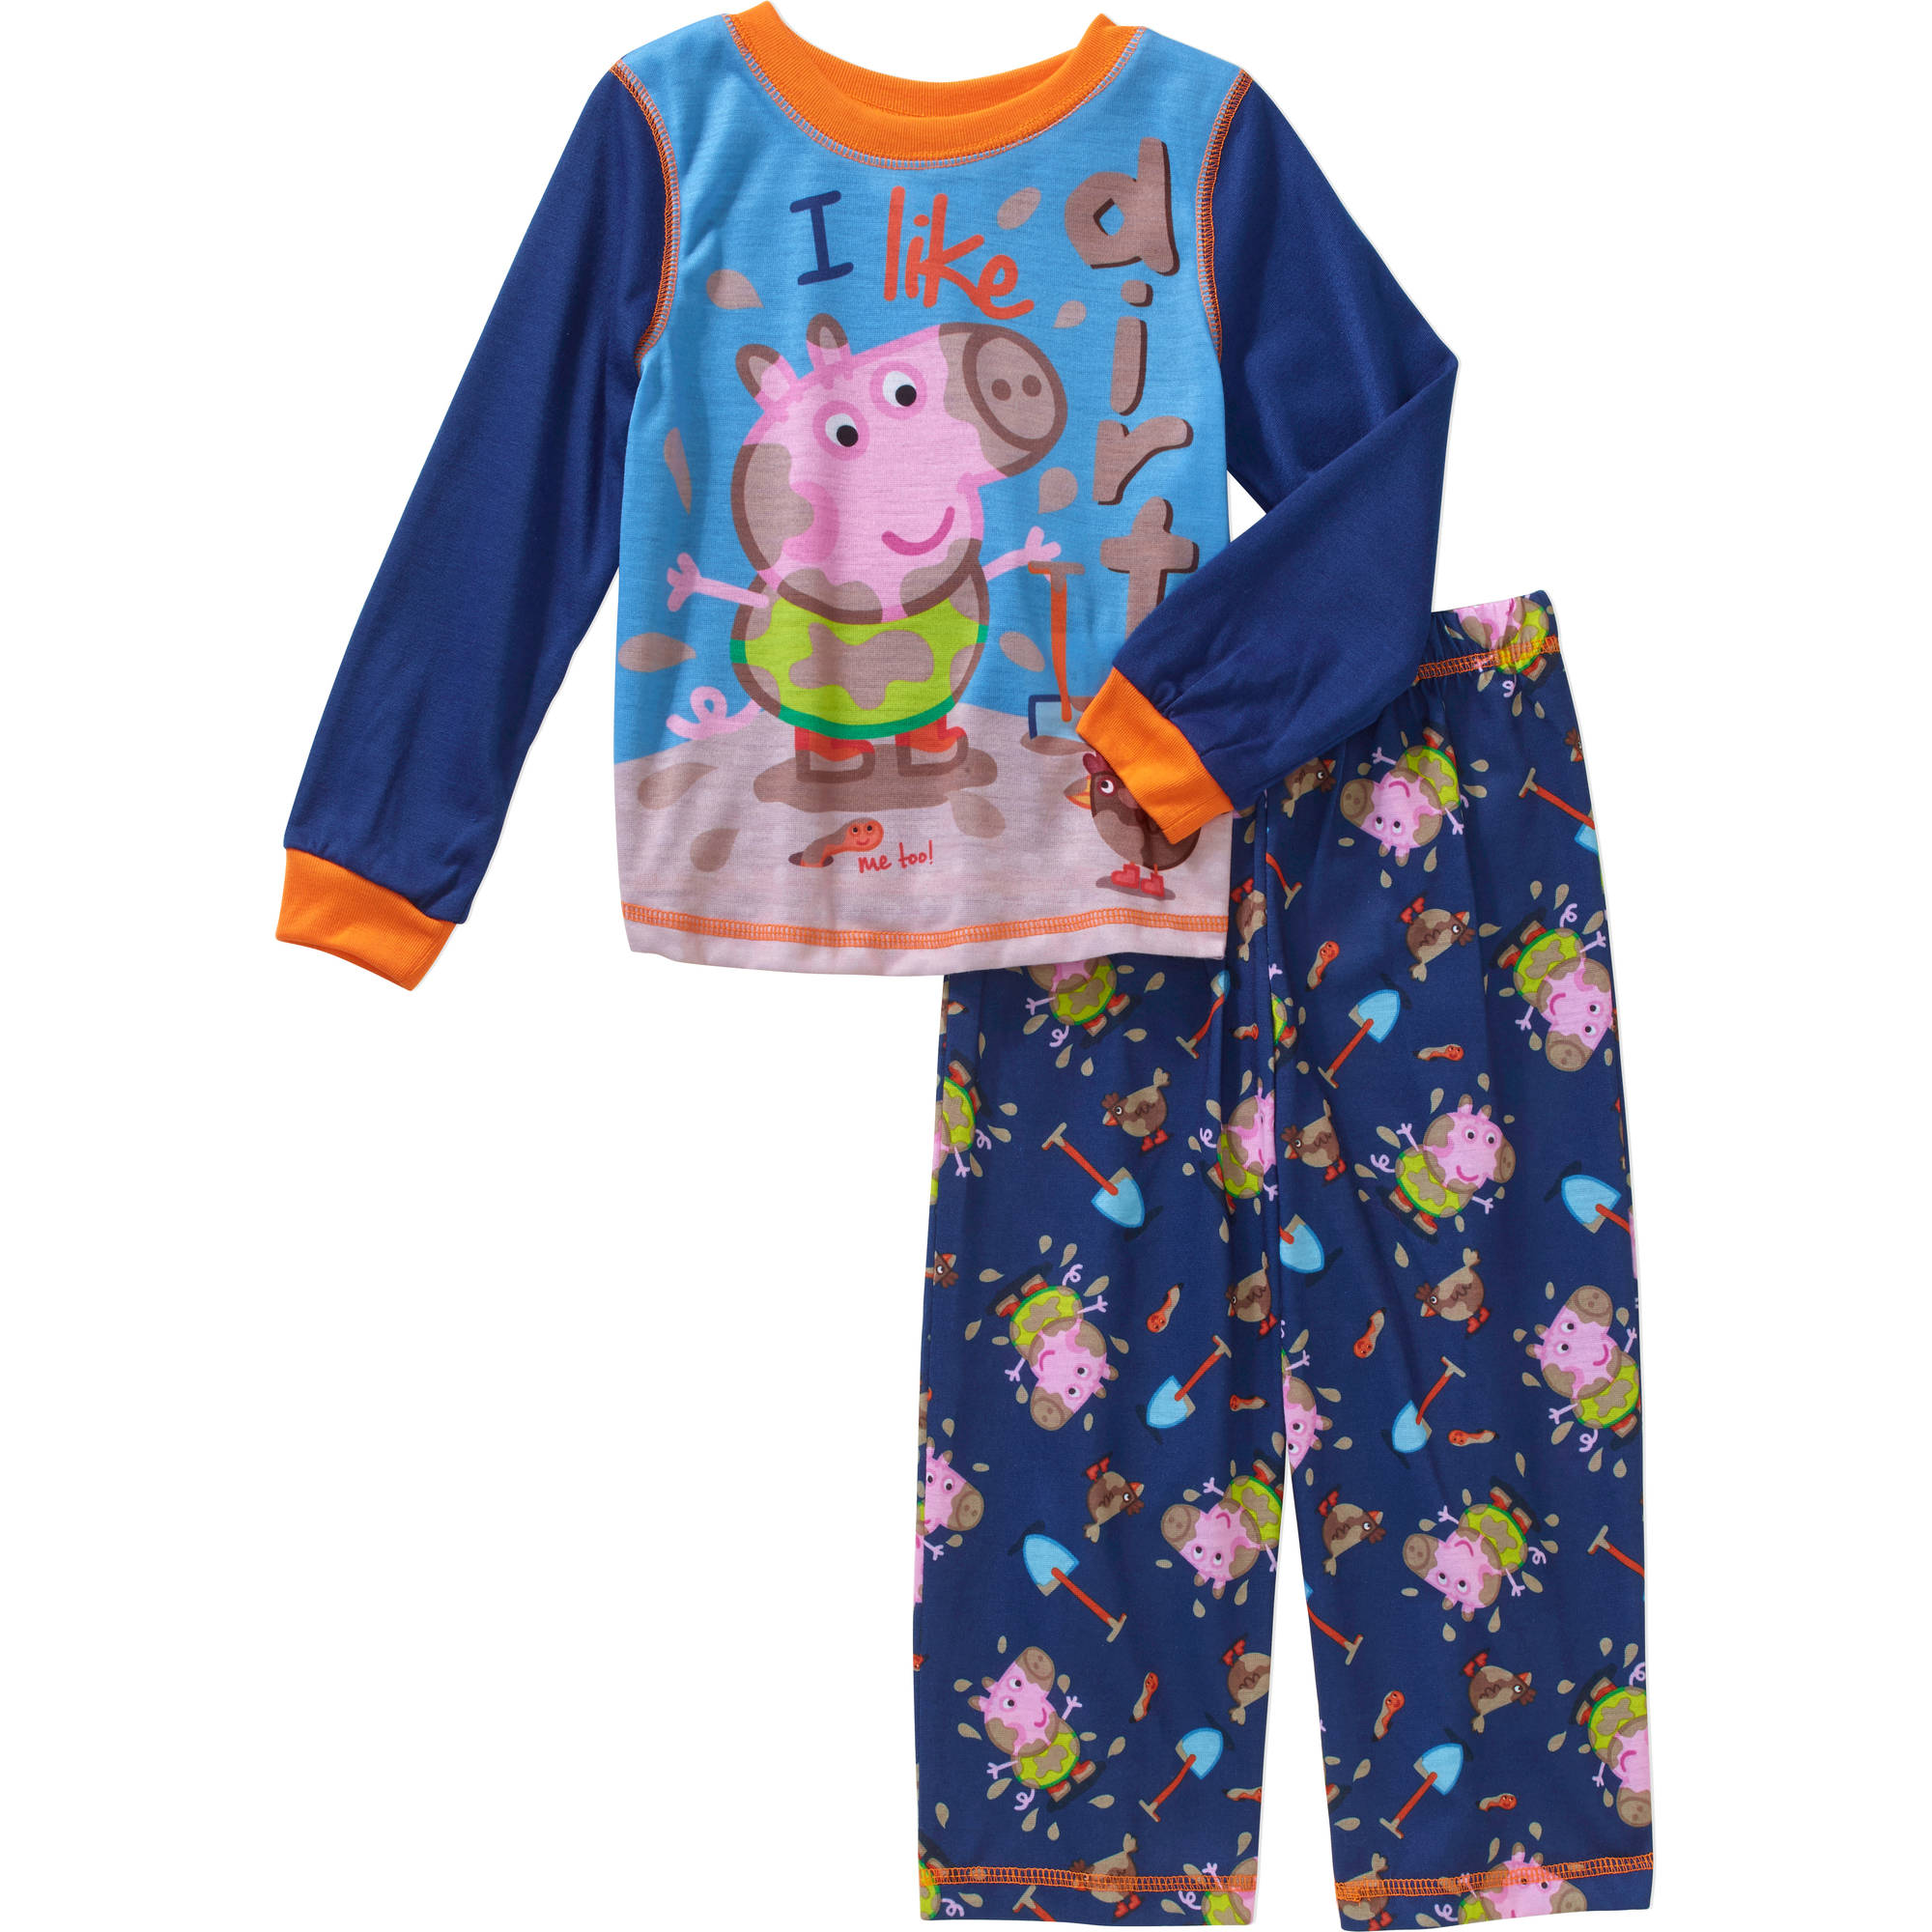 Toddler Boys' George Pajamas 2-Piece Set